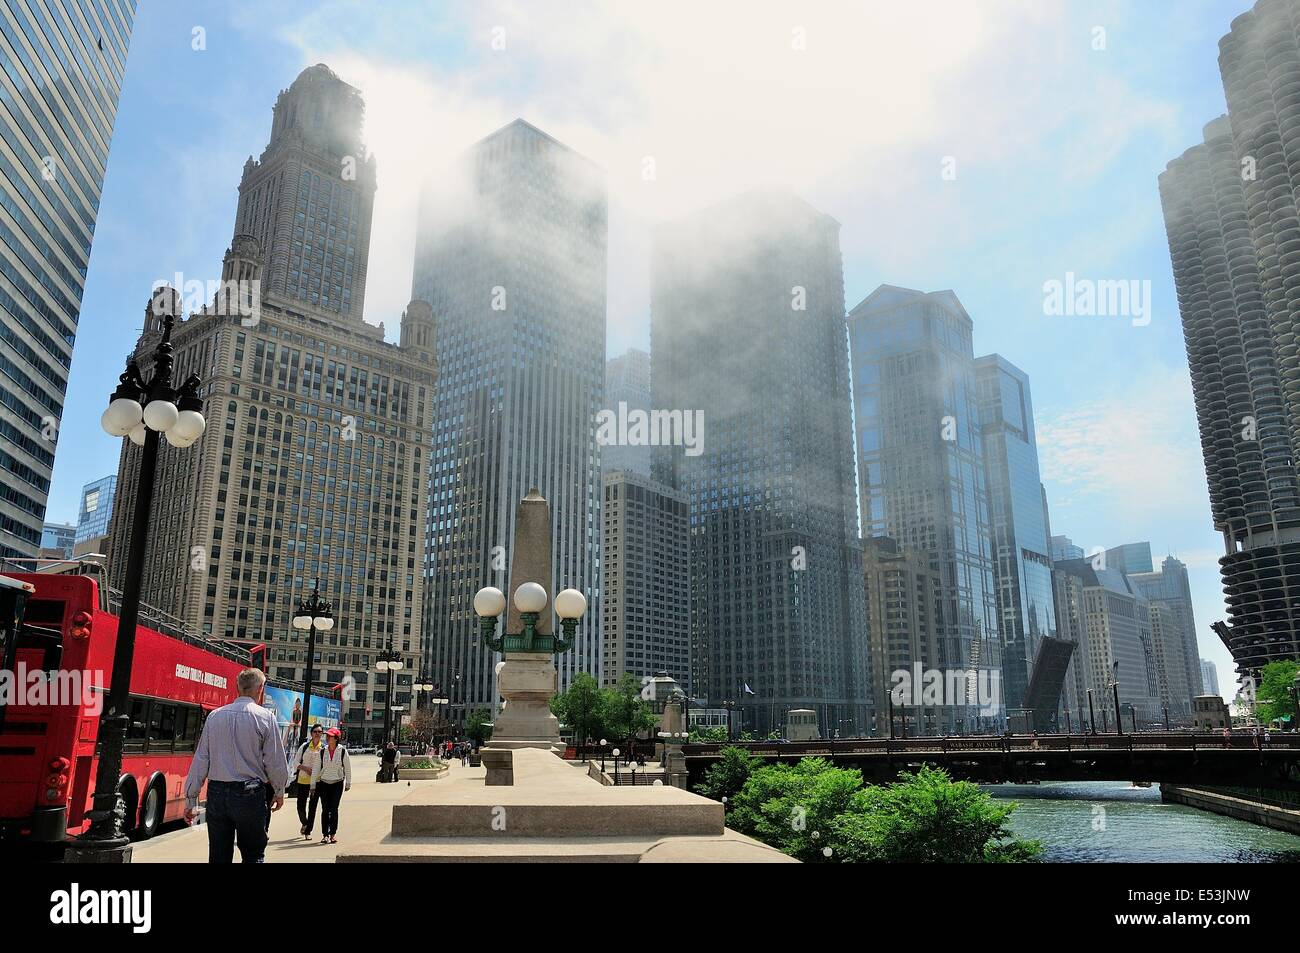 Chicago's River Walk park along the Chicago River. - Stock Image